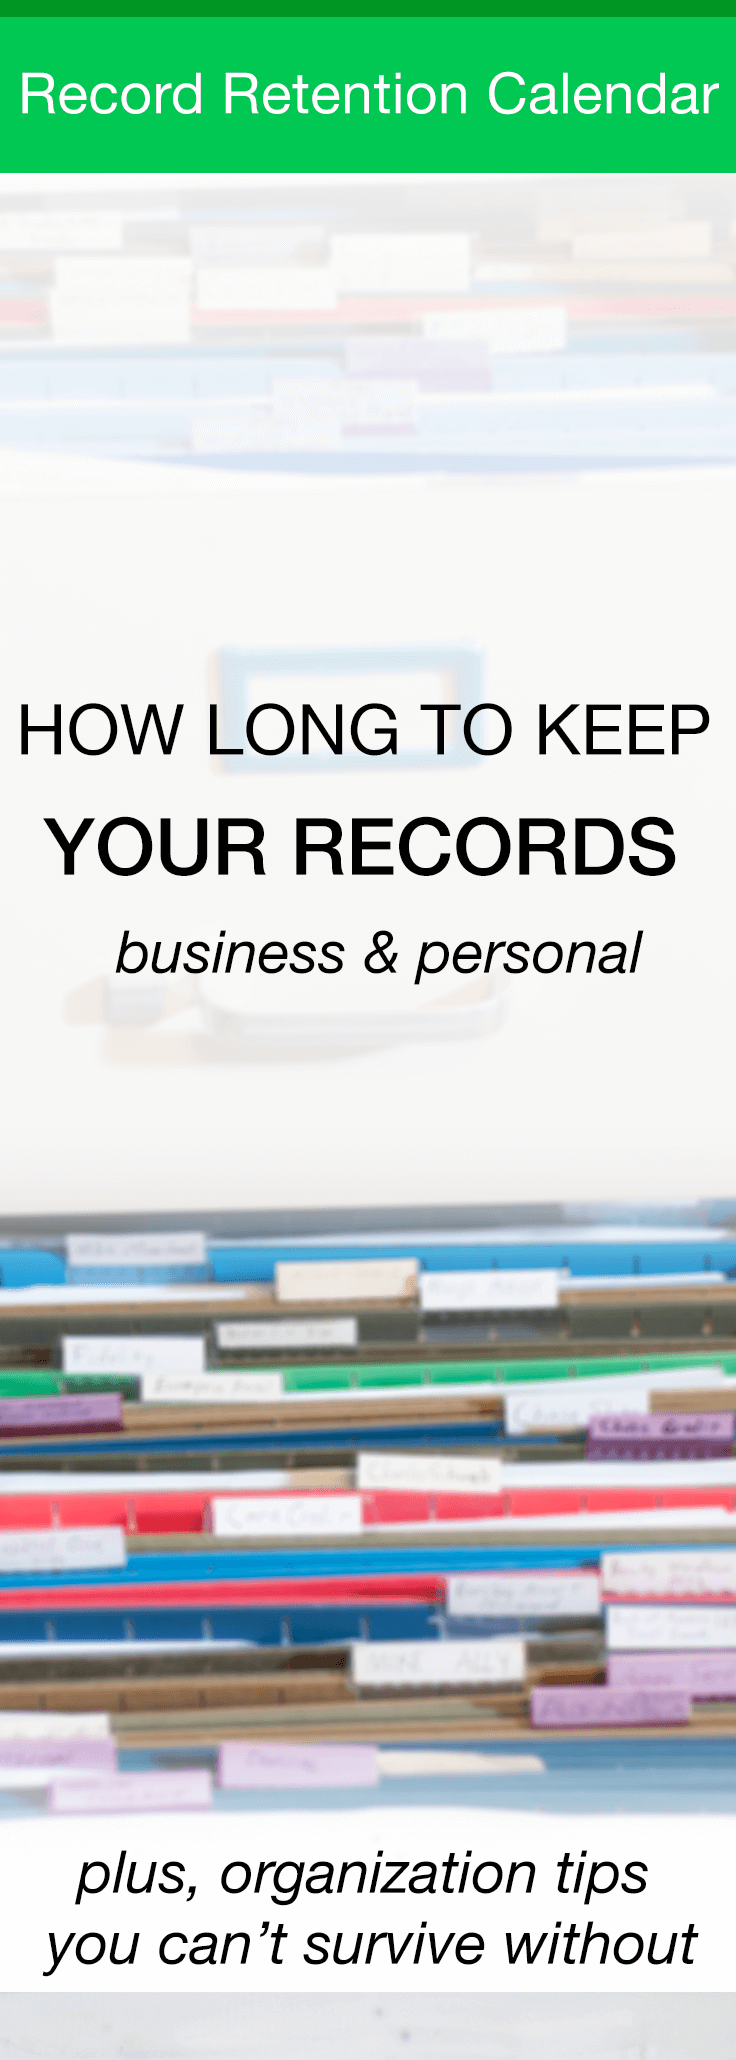 How Long To Keep Records - Personal and Business 1 This record retention schedule will guide you how long to keep records for all manners of receipts and paperwork. The schedule is organized by length of time to keep records or by the type of documents.